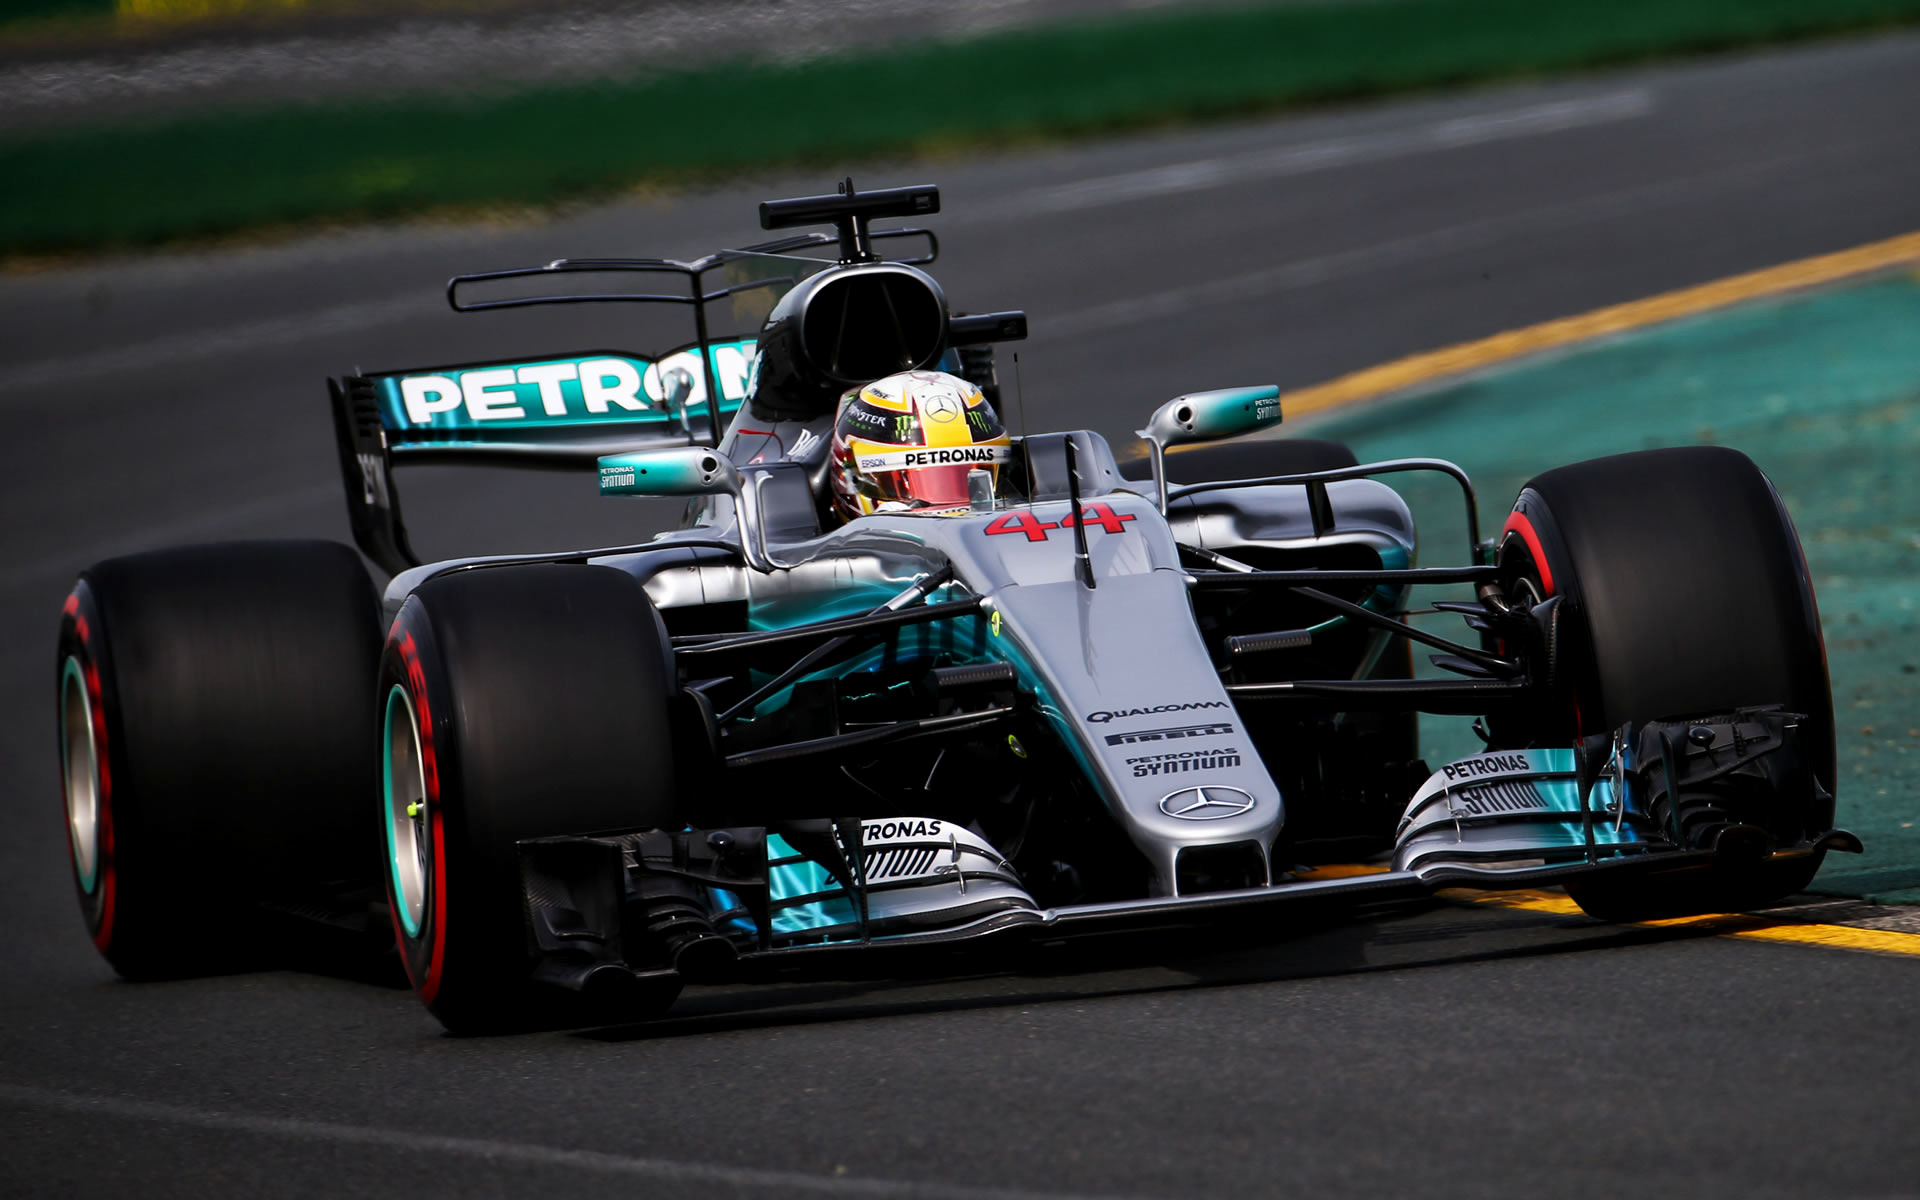 2017 Mercedes-AMG F1 W08 EQ Power+ - Wallpapers and HD ...